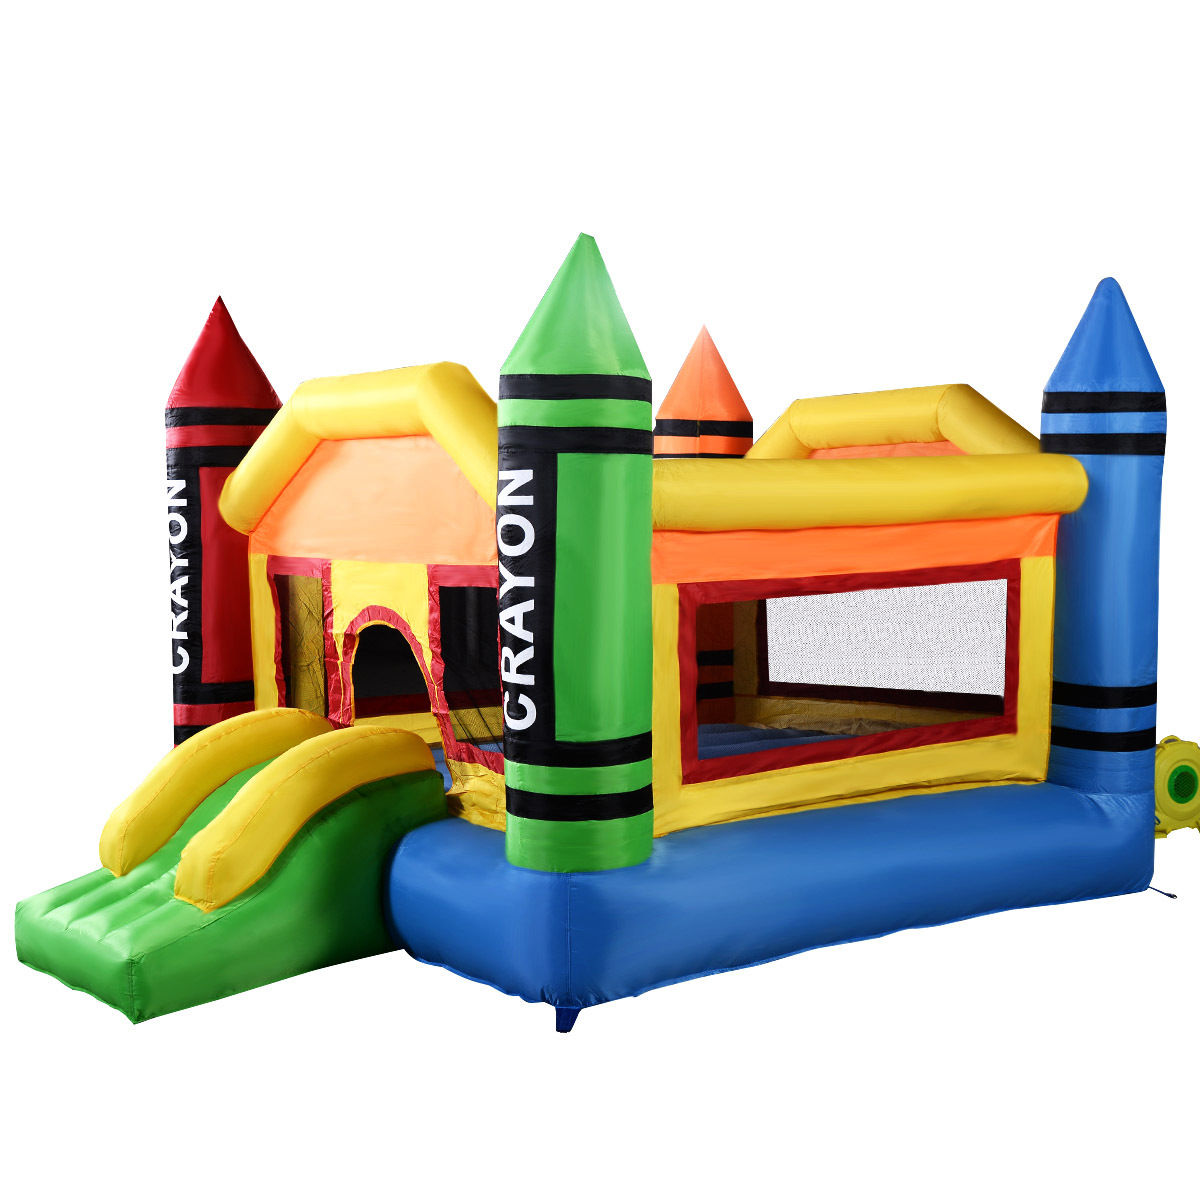 Gymax Inflatable Bounce House Jumper Moonwalk Bouncer Without Blower